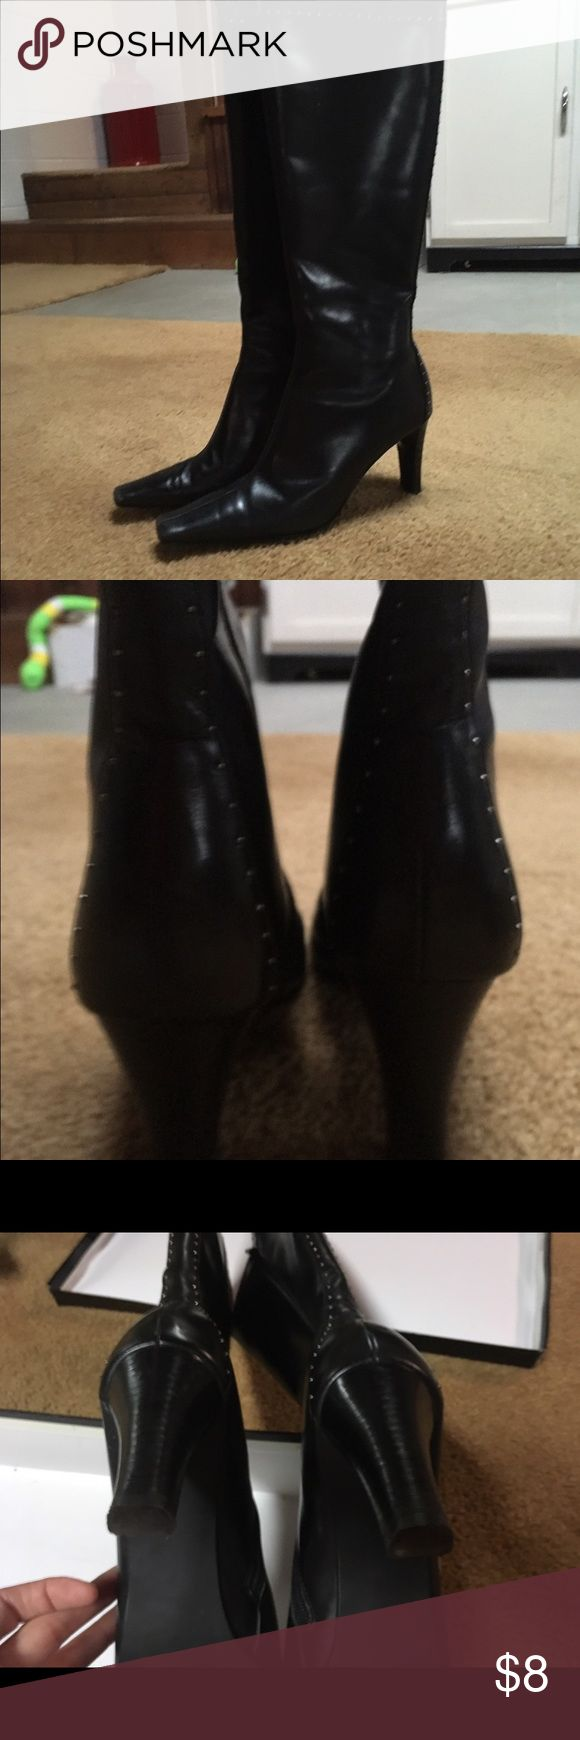 Tall black boots Lightly studded classy black boots madison Shoes Heeled Boots